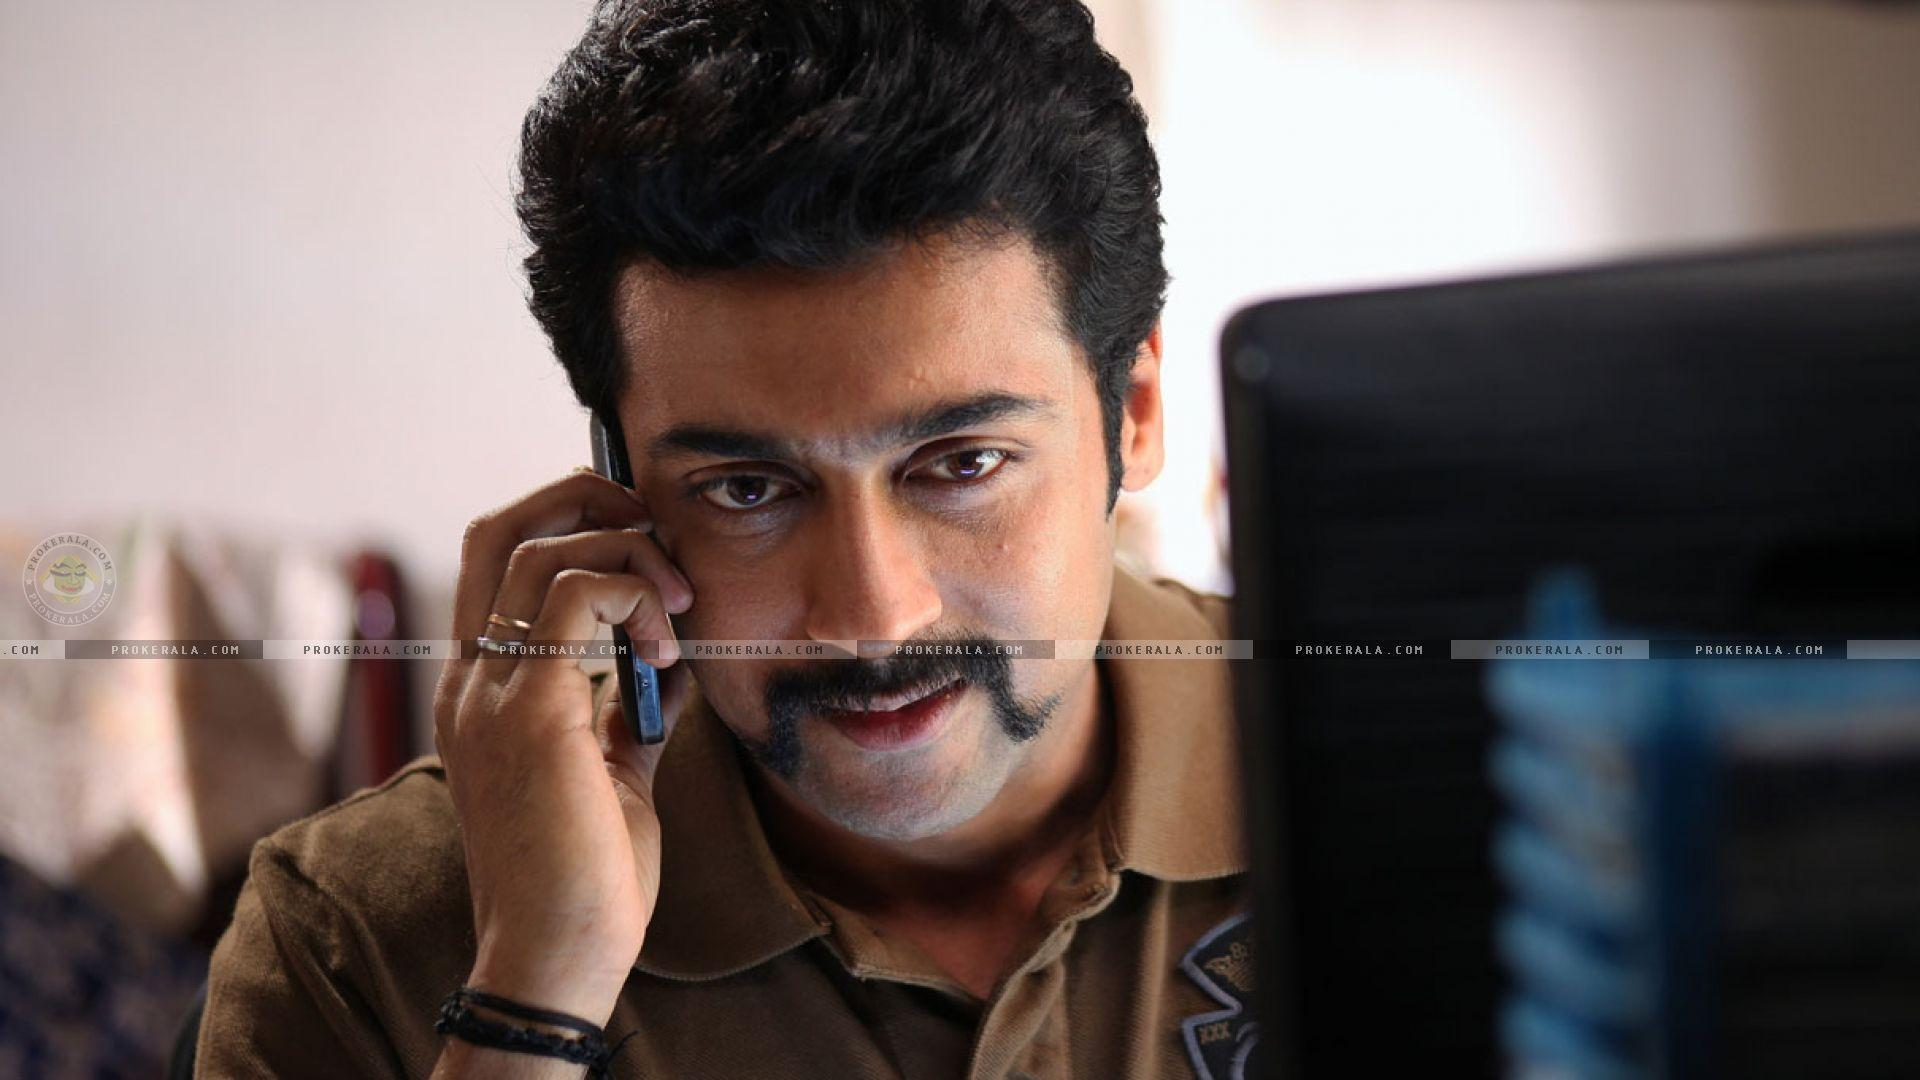 Surya in Singam 2 - Surya Wallpapers for download Still # 36